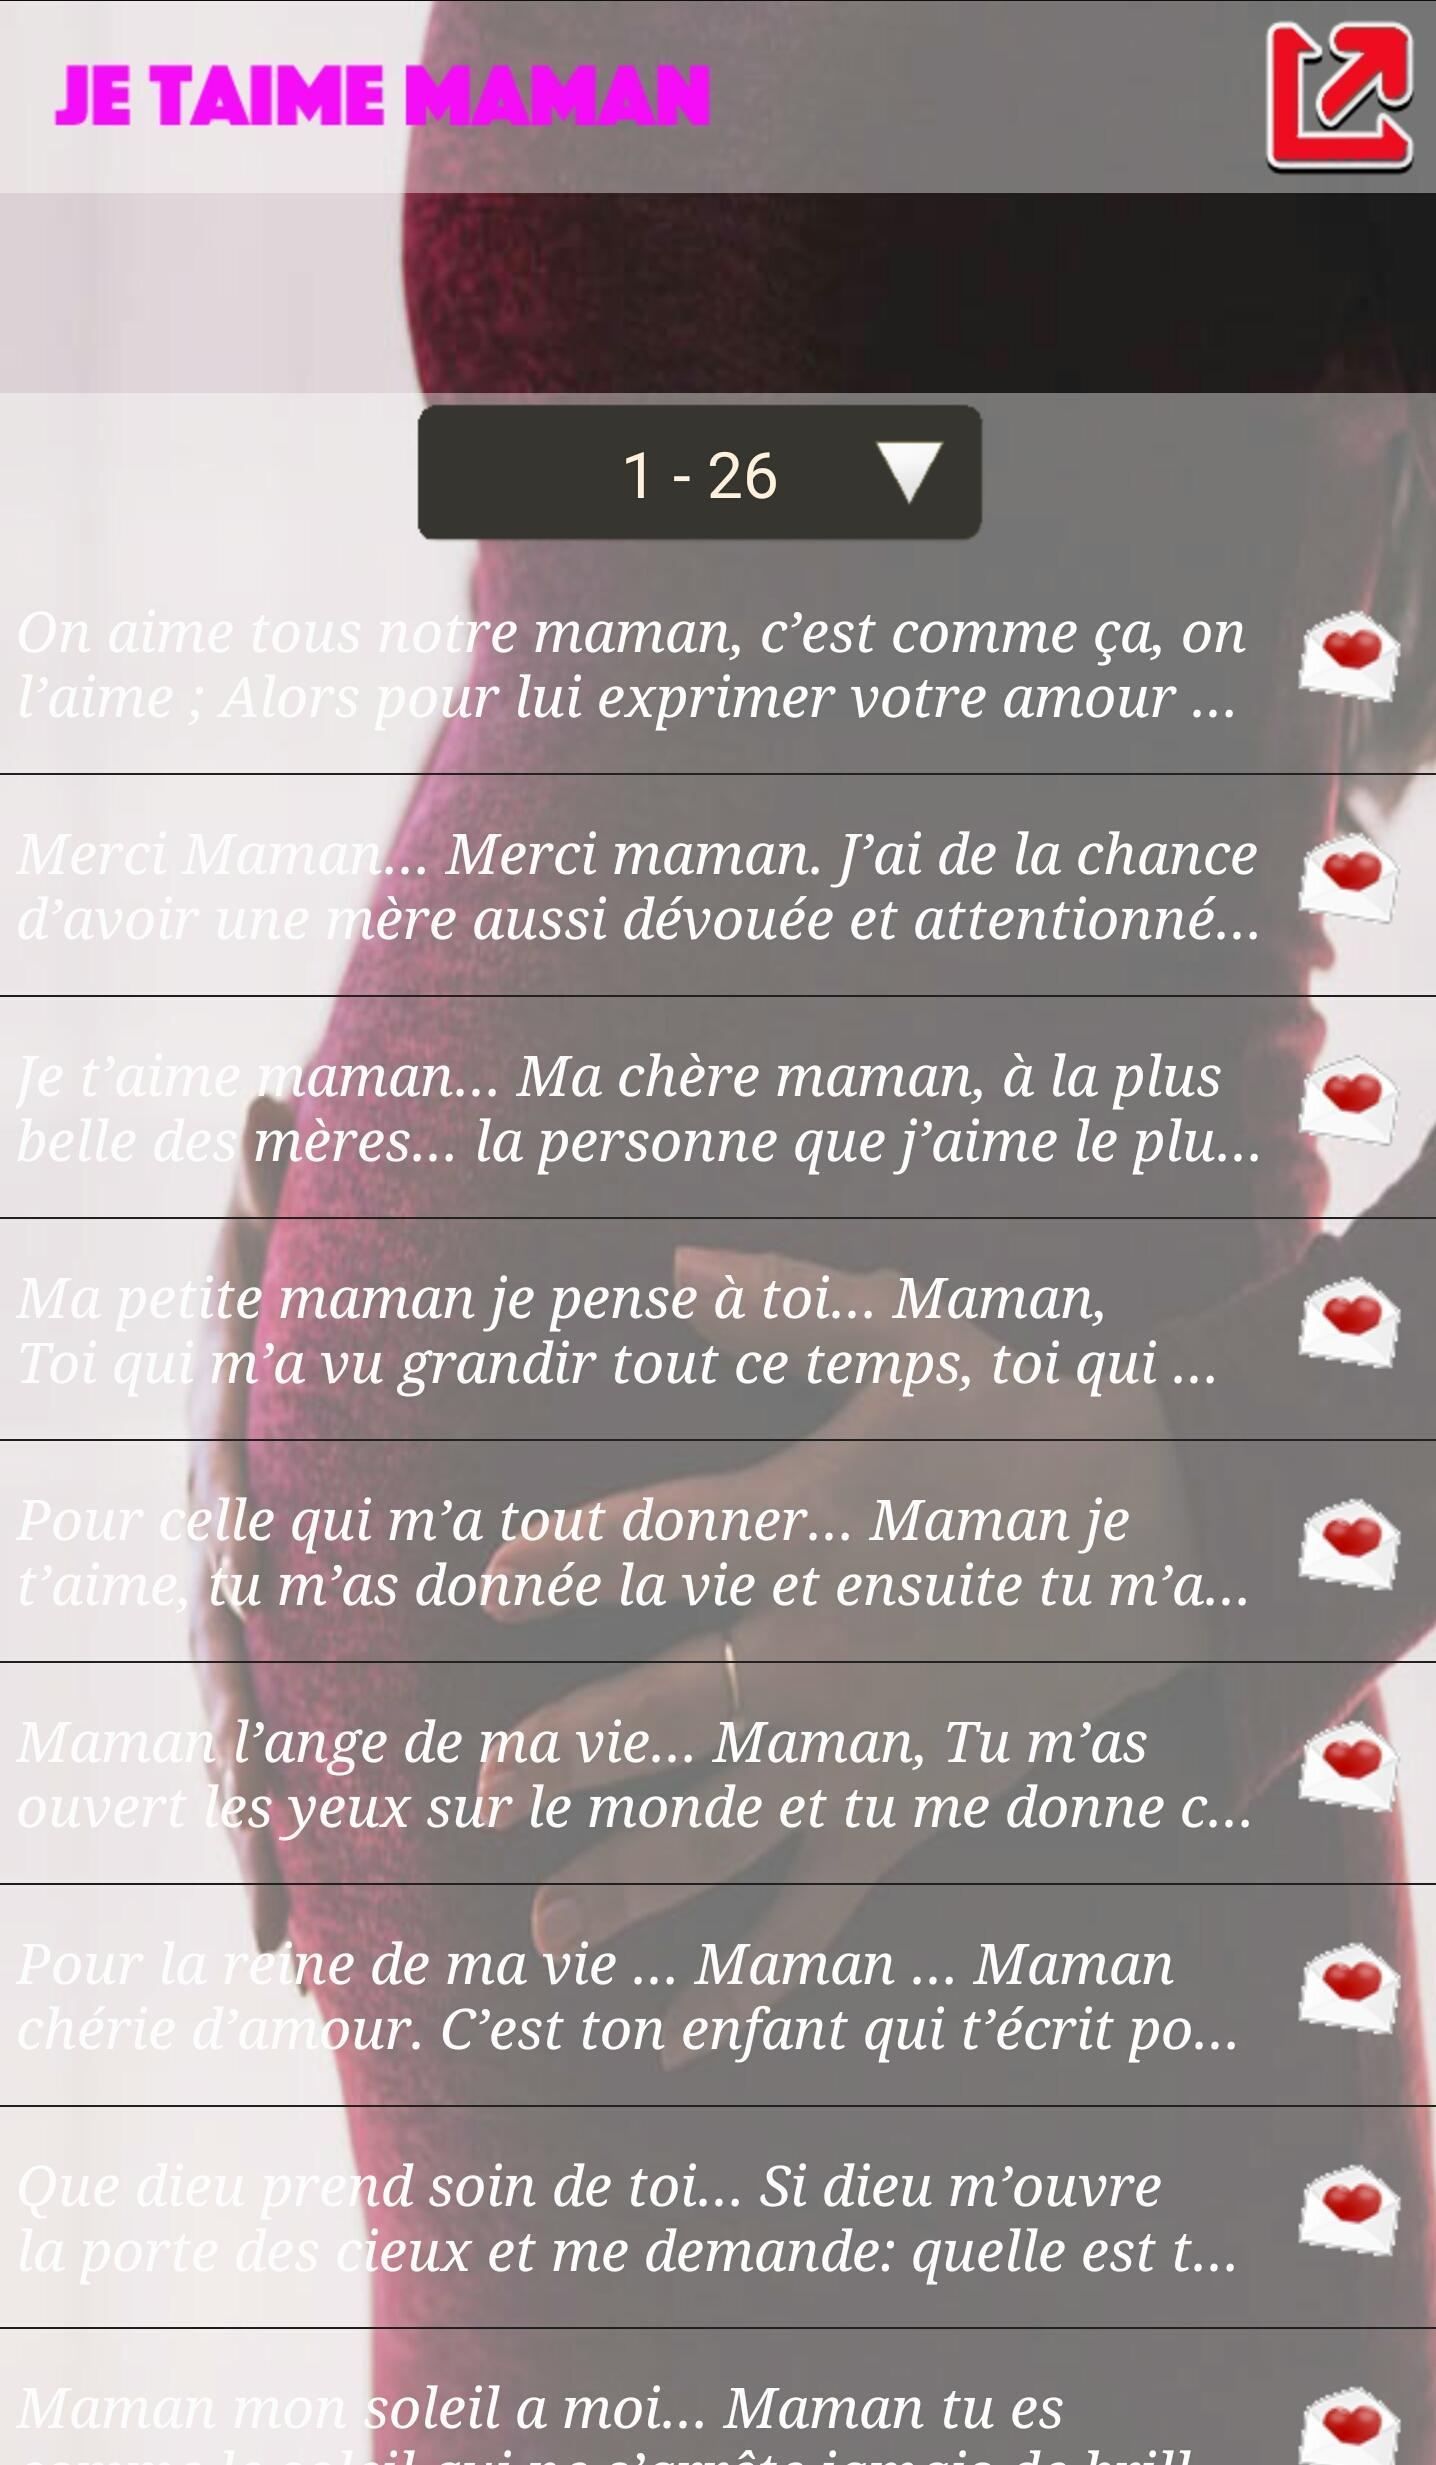 Sms Je T'aime Maman For Android - Apk Download destiné Texte Maman Je T Aime